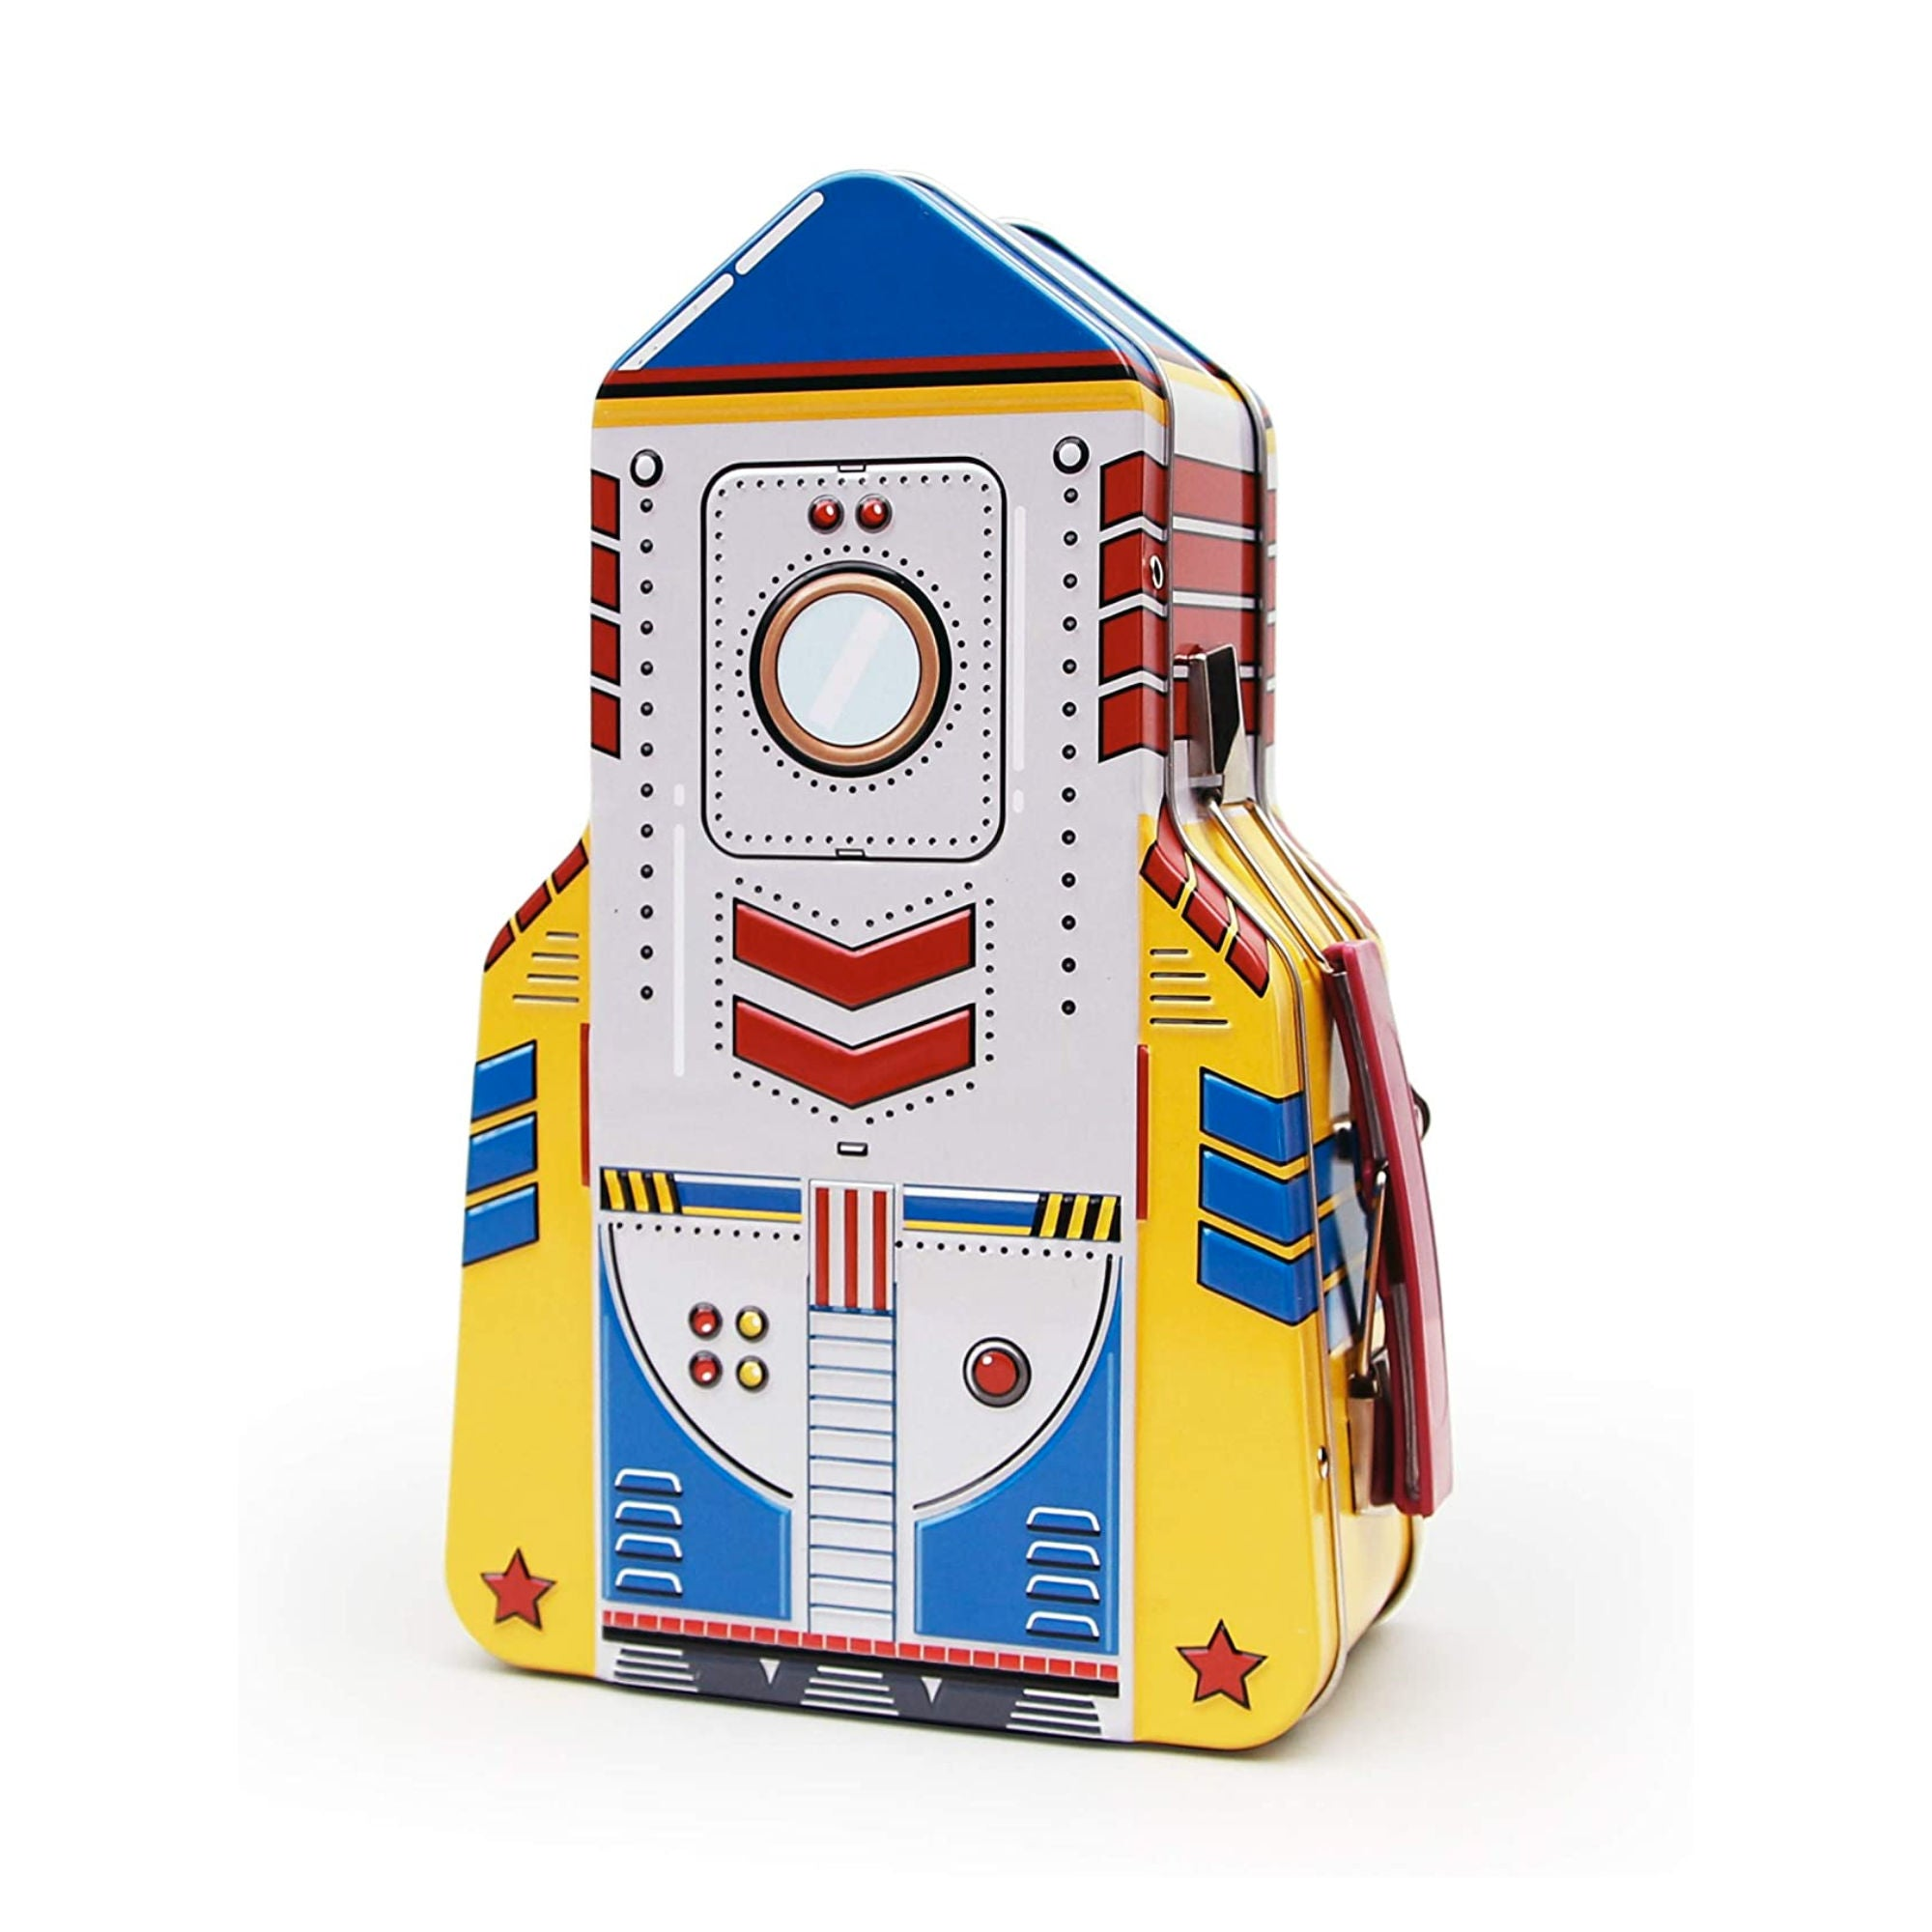 Rocket kids toy storage containers